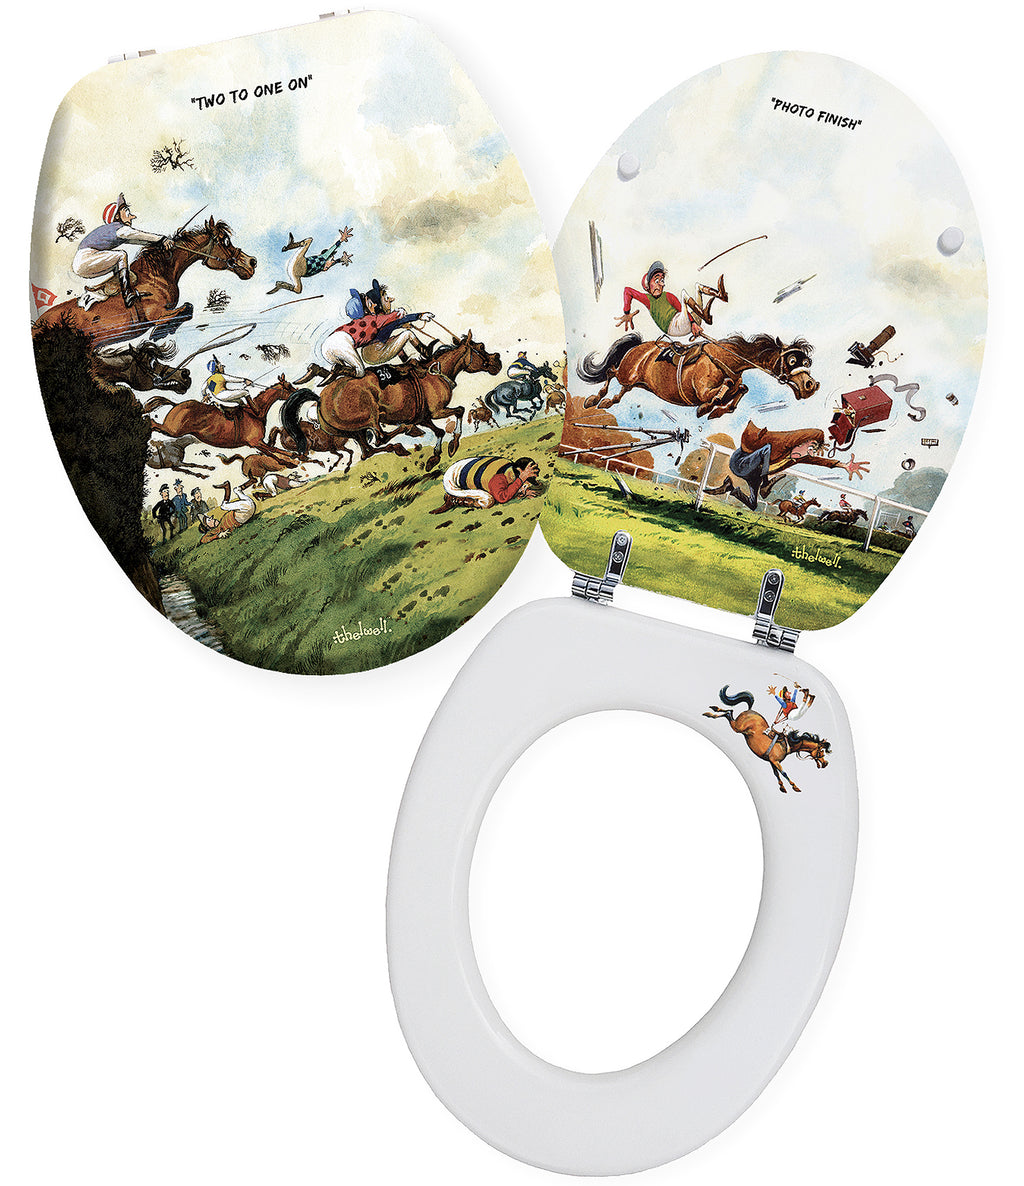 Two To One On - Norman Thelwell - Toilet Seat.